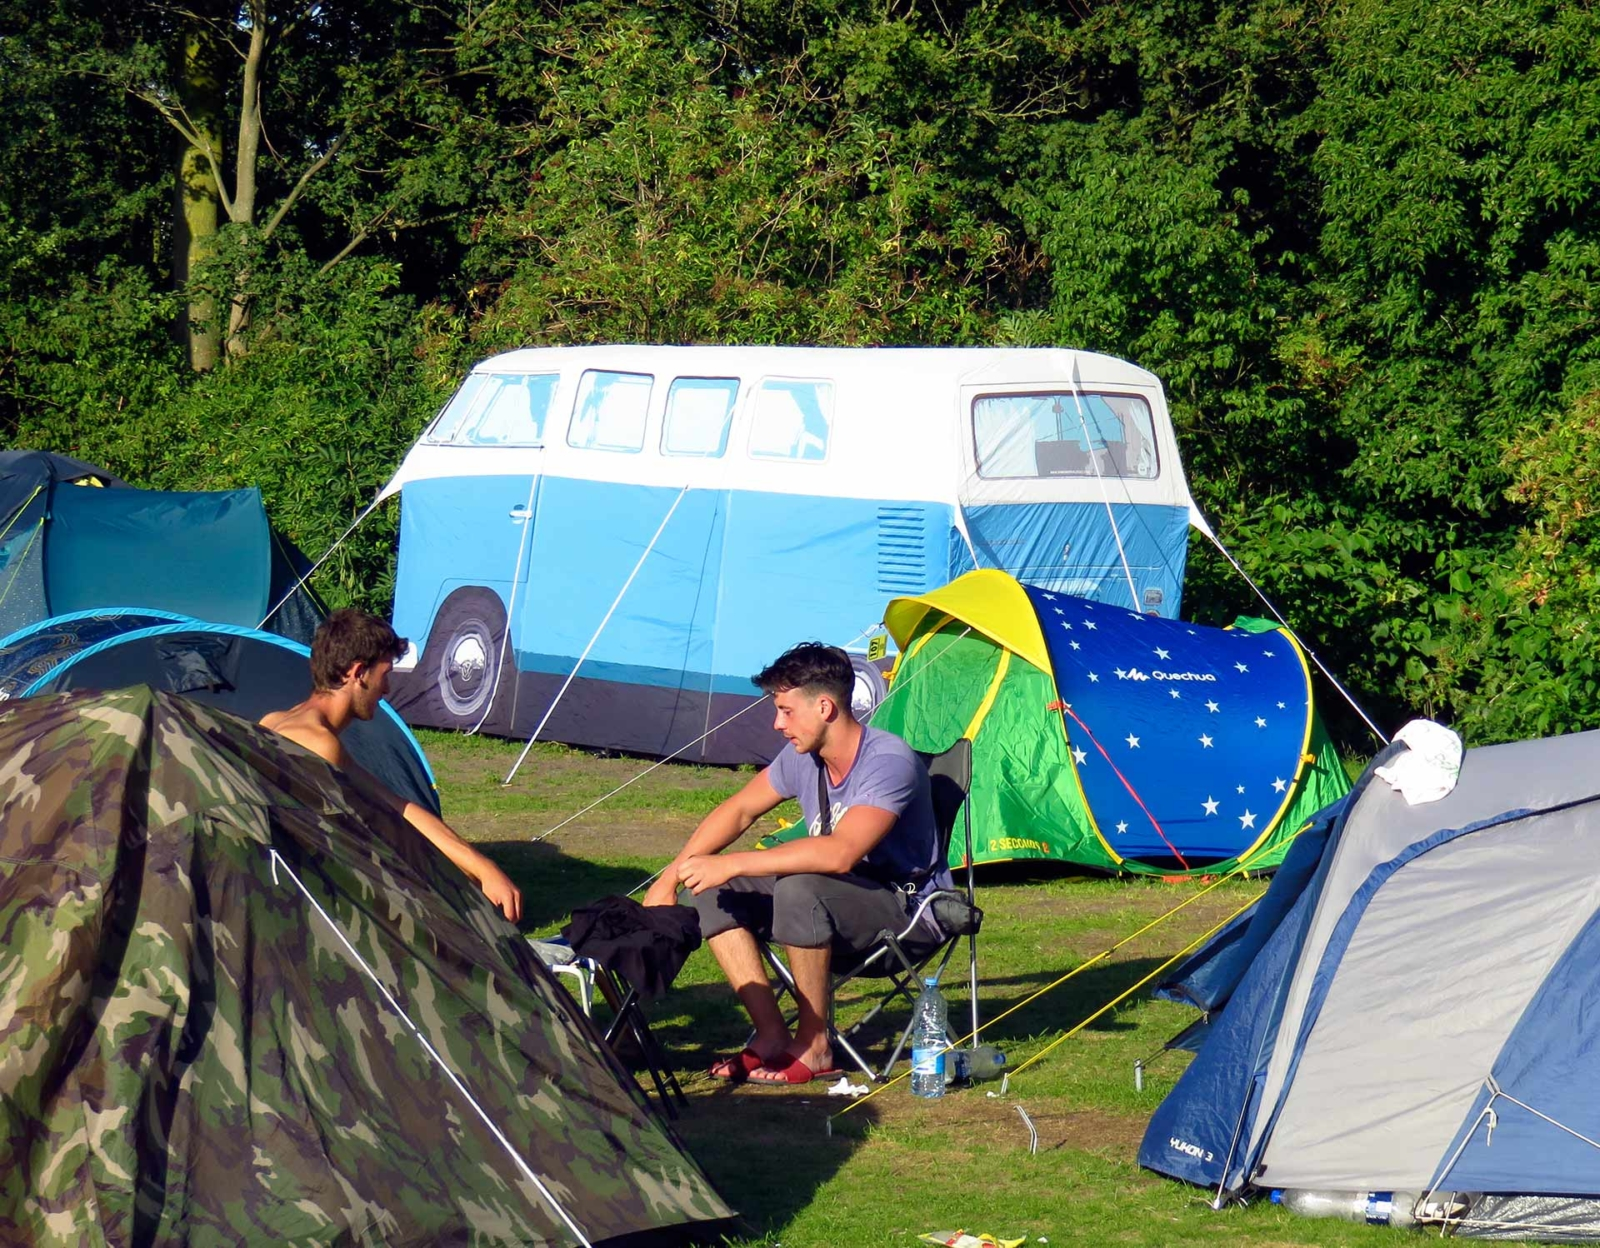 Get Just About Anywhere And Camp Out Anywhere Using Off - Road Camp Trailers